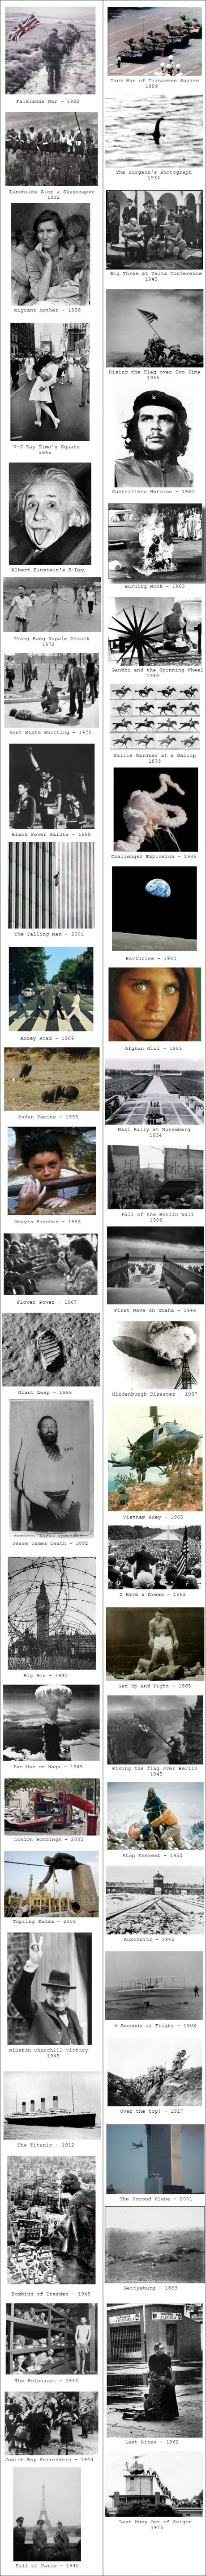 Iconic Pictures of the World.